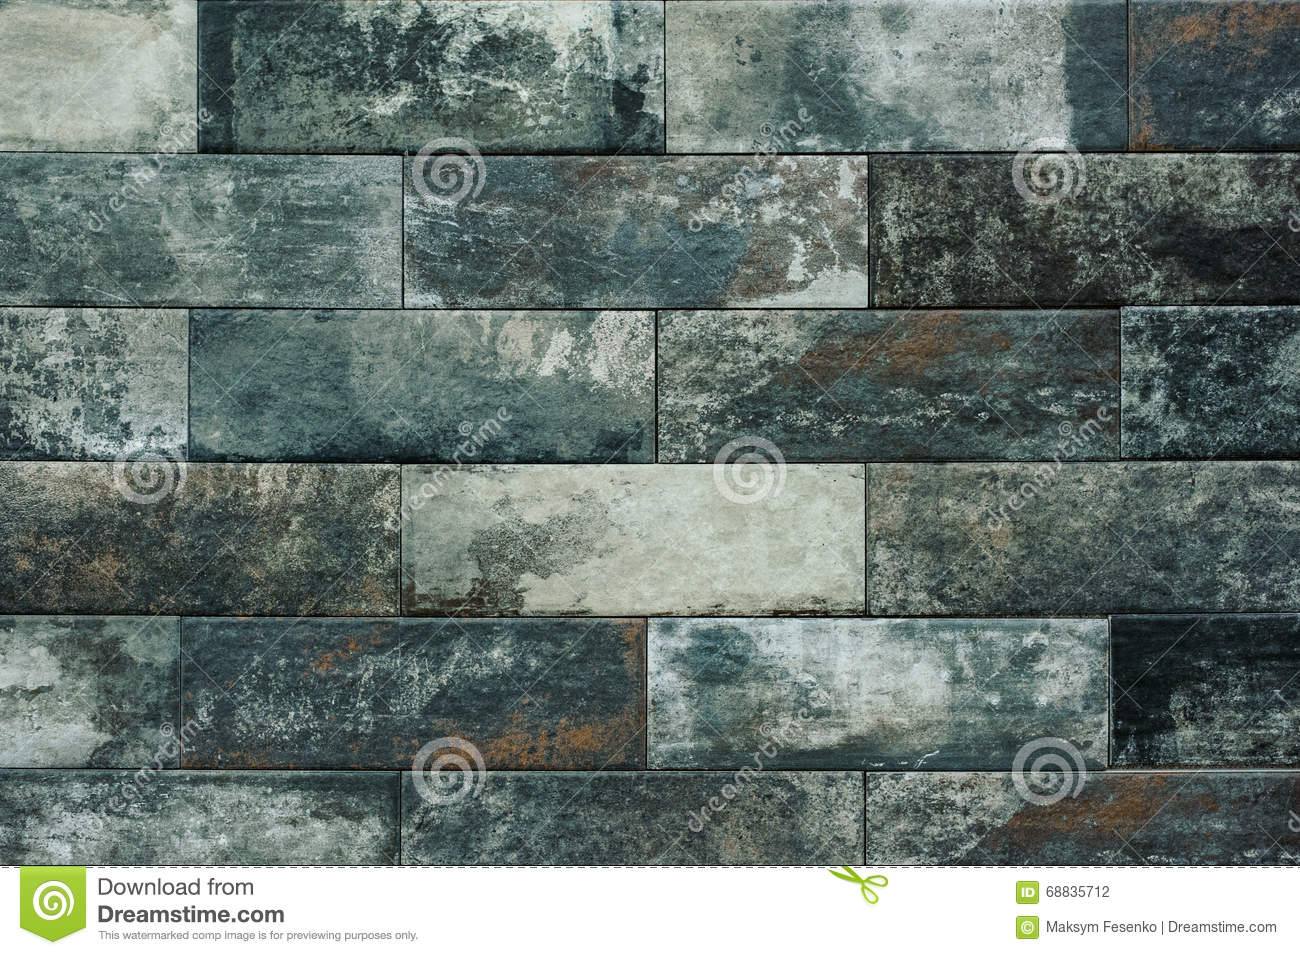 Gray Cartoon Brick Wall Texture : Grey tiled brick wall texture background stock photography